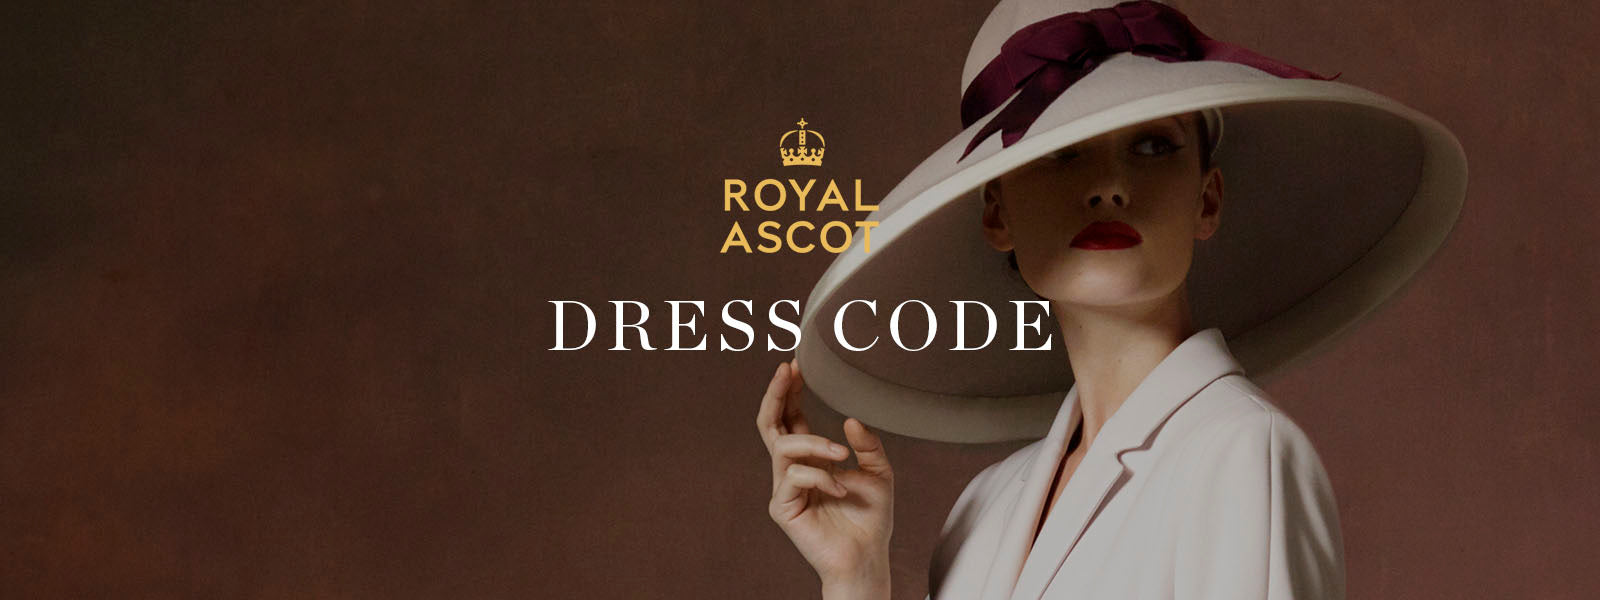 The races have strict dress rules to adhere to, so brush up on what you can and can't wear. Image from Royal Ascot.